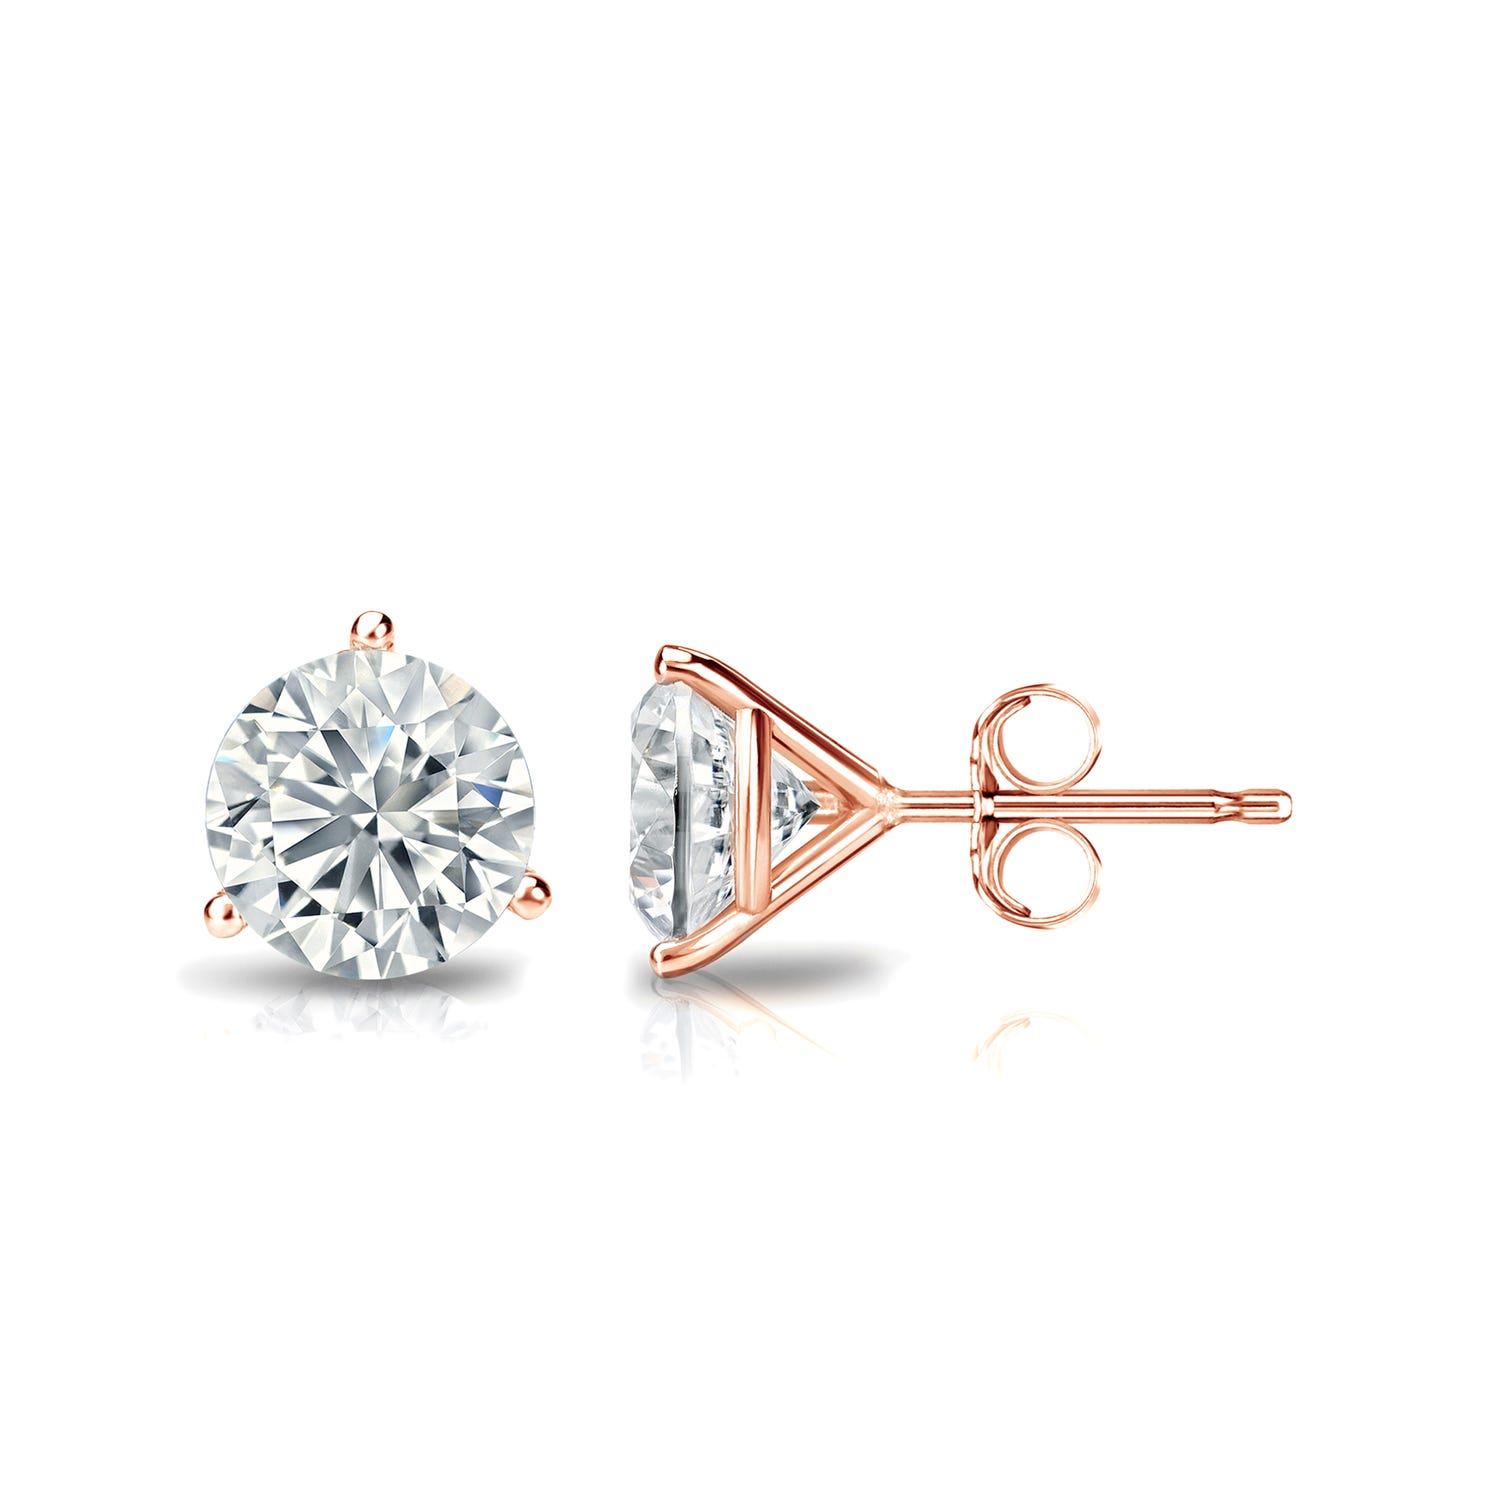 1 CTTW Round Diamond Solitaire Stud Earrings IJ VS2 in 14K Rose Gold IGI Certified 3-Prong Setting